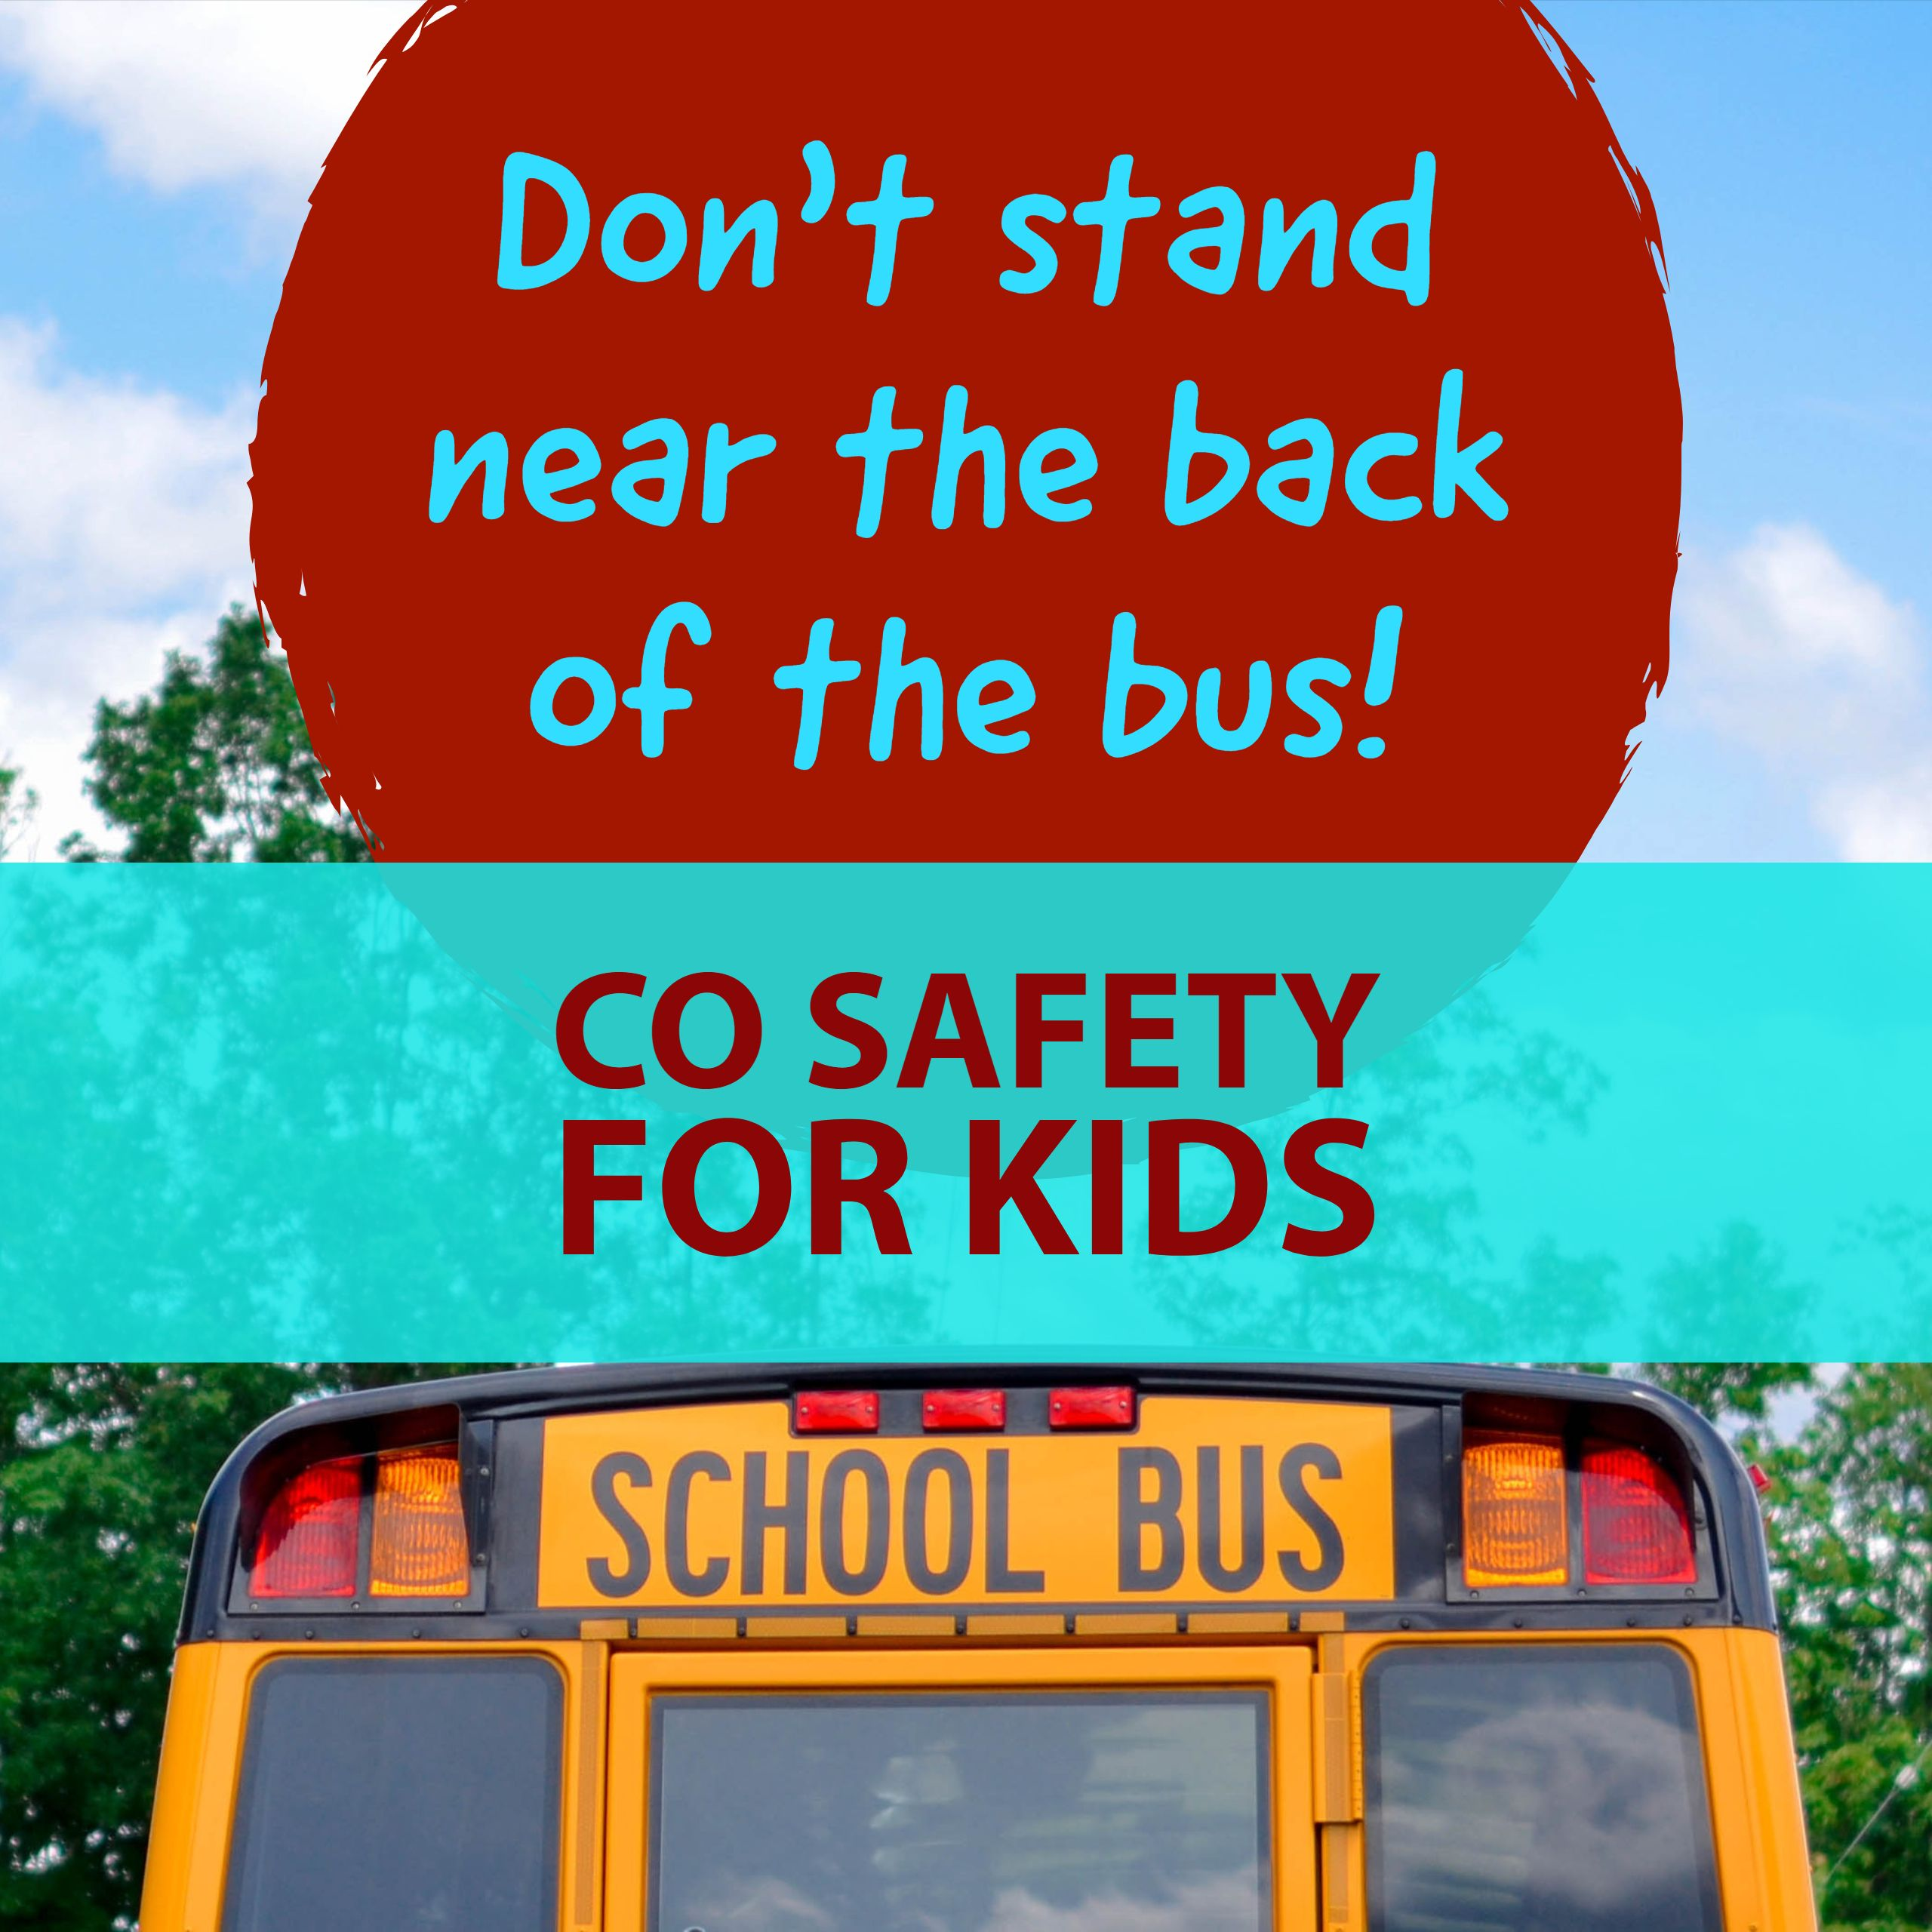 Kids Are At Just The Right Height For Breathing In Fumes